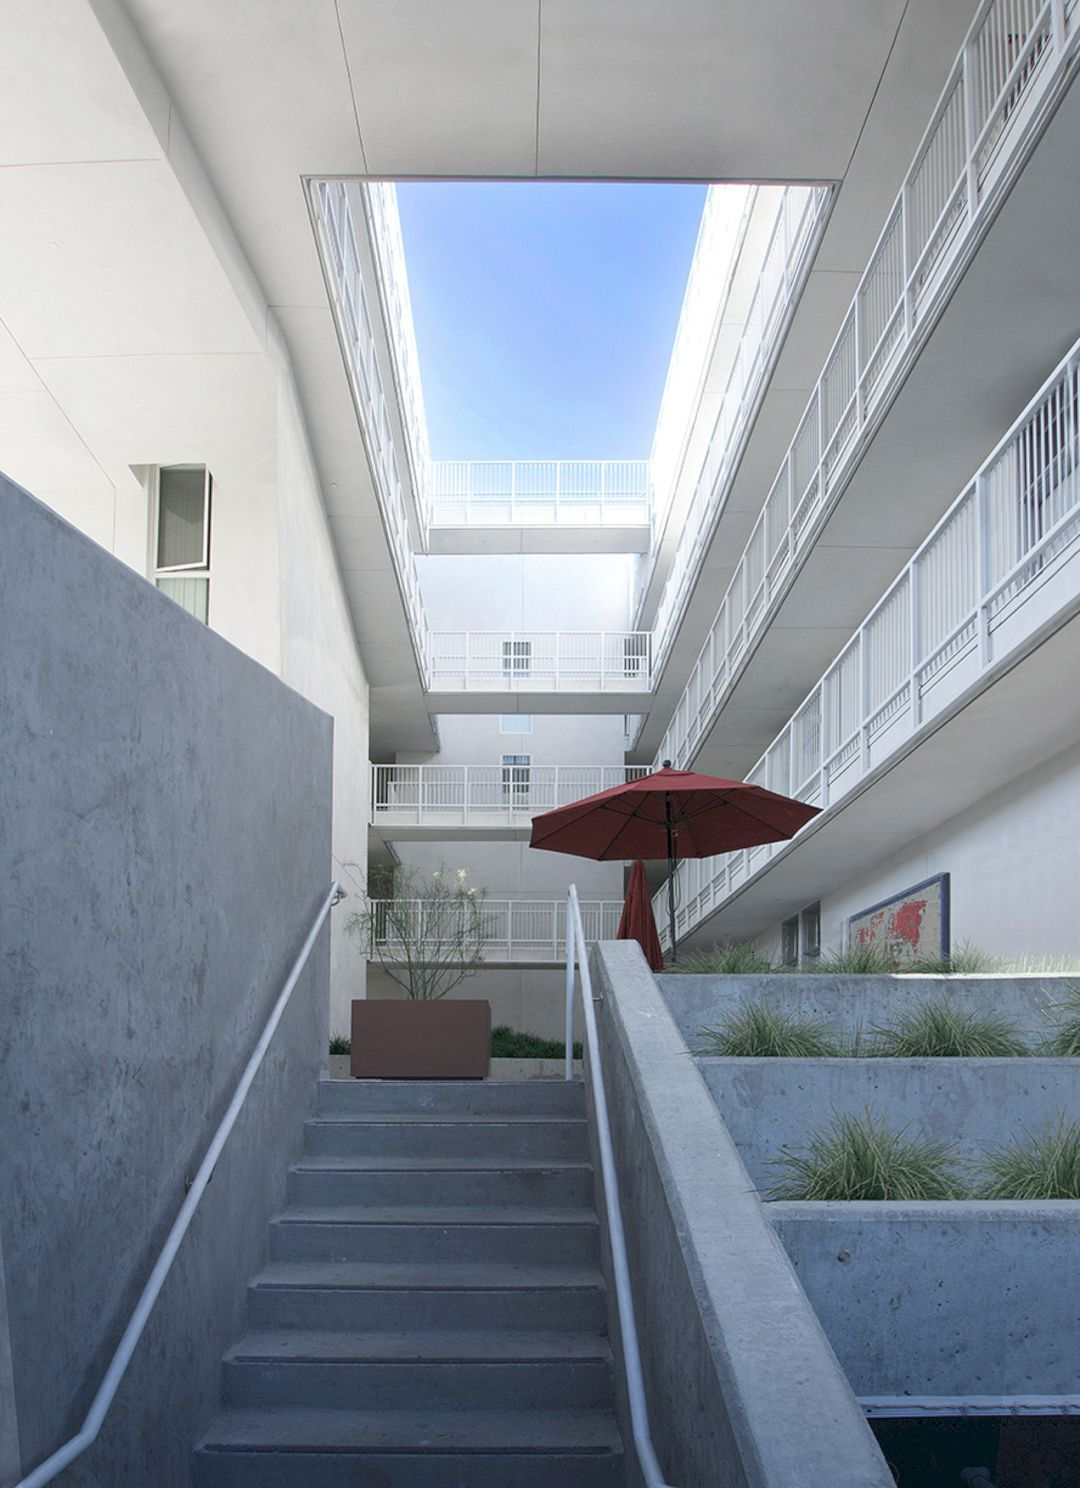 The Six Apartments Affordable Housing With Support Services And Rehabilitation For Disabled Veterans Modern Architecture Building Modern Architecture Veteran Housing